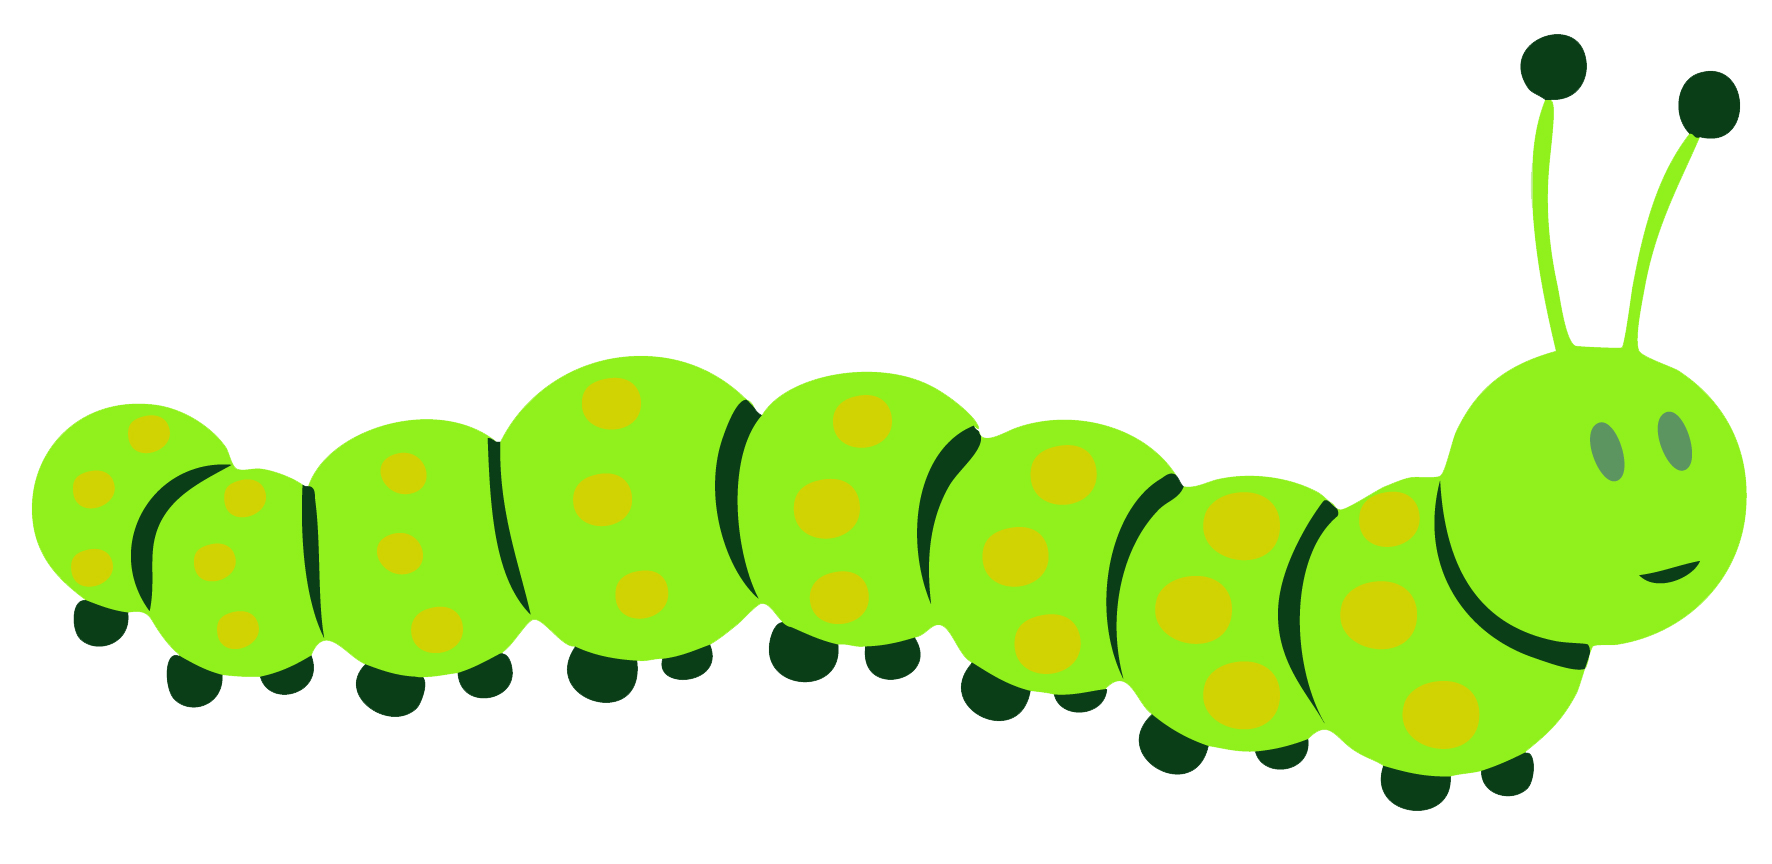 Butterfly The Very Hungry Caterpillar Clip art.